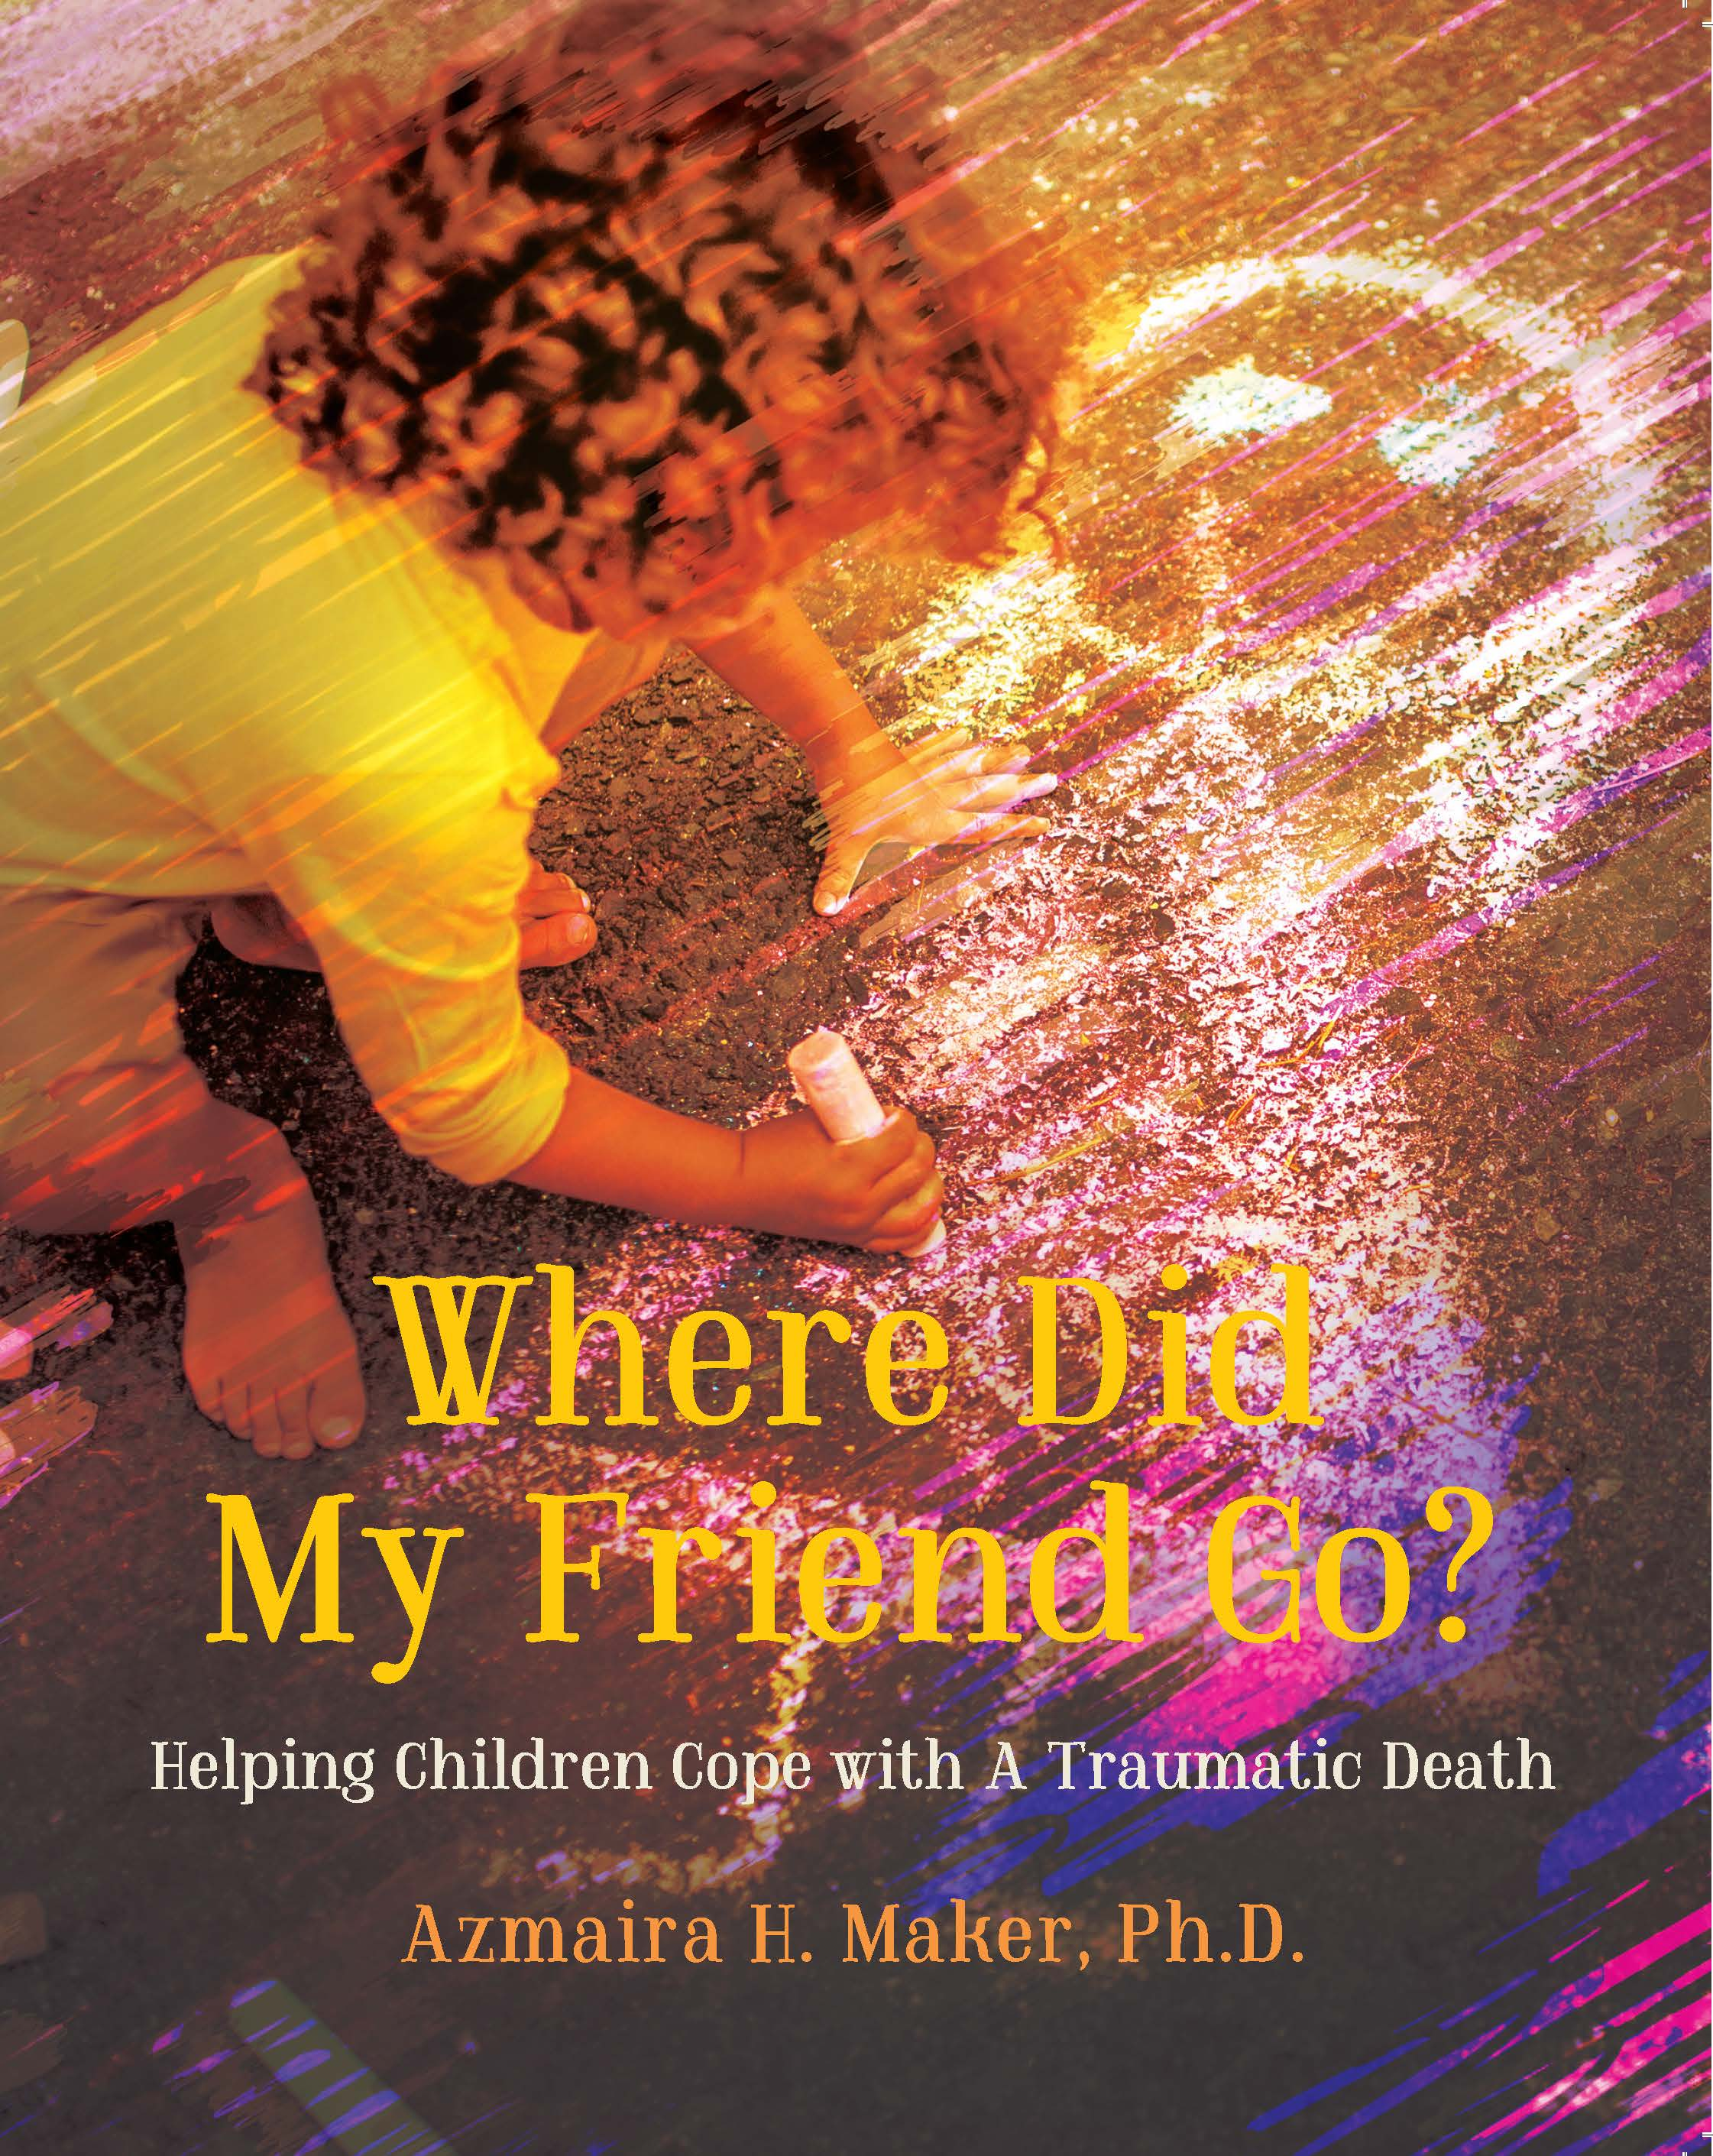 Where Did My Friend Go? Wins Finalist In 2017 Best Book Awards